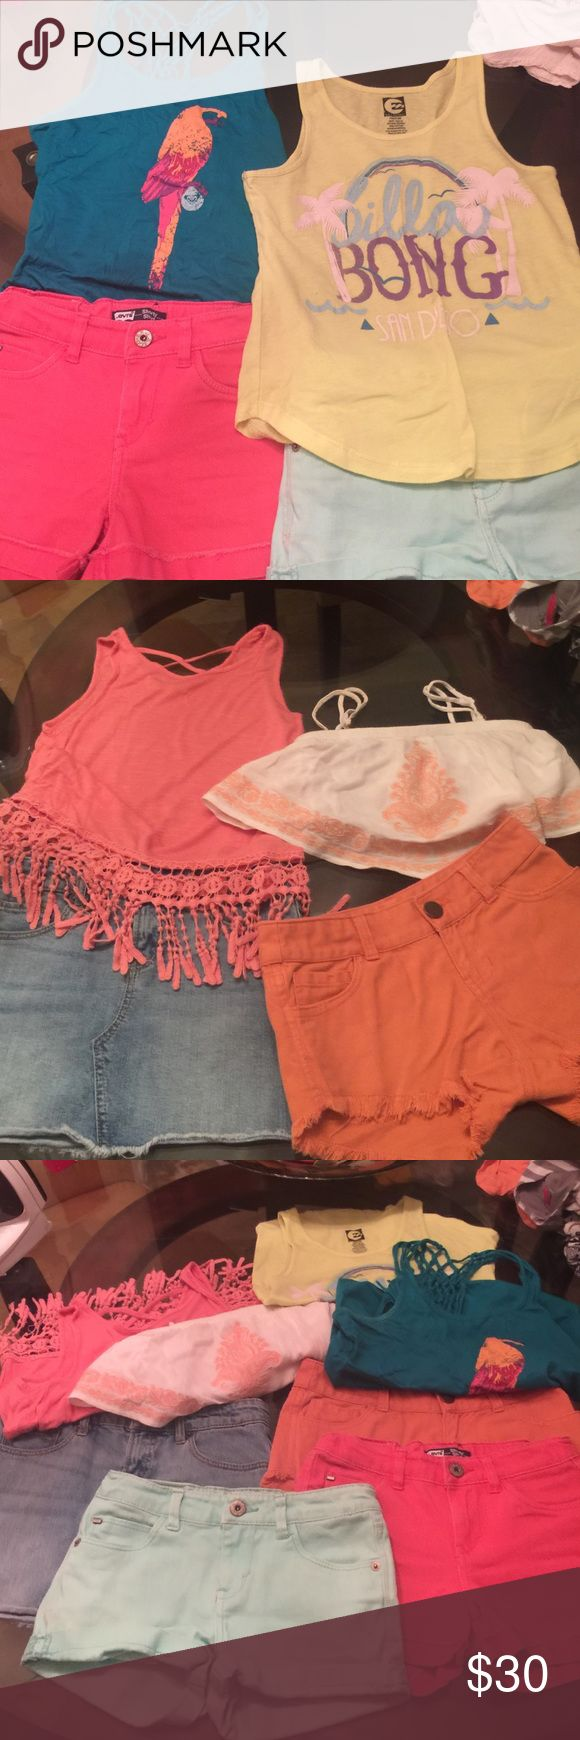 Lot girls clothes size 10-12 Gently used lot girls clothes. Lucky Brand Denim skirt size 10; Levi's aqua shorty short size 10R; Coral Levi's shorty short 10R; O'Neil orange shorty short with frayed ends ; Roxy girl parrot tank size 10; Billabong San Diego tank yellow size 10/12; LA Hearts tube top white and orange size small; Coral Soprano tank with crochet design on bottom of tank girls size 14 runs small. DNKY size 10 hipster sun short Lucky Brand Matching Sets